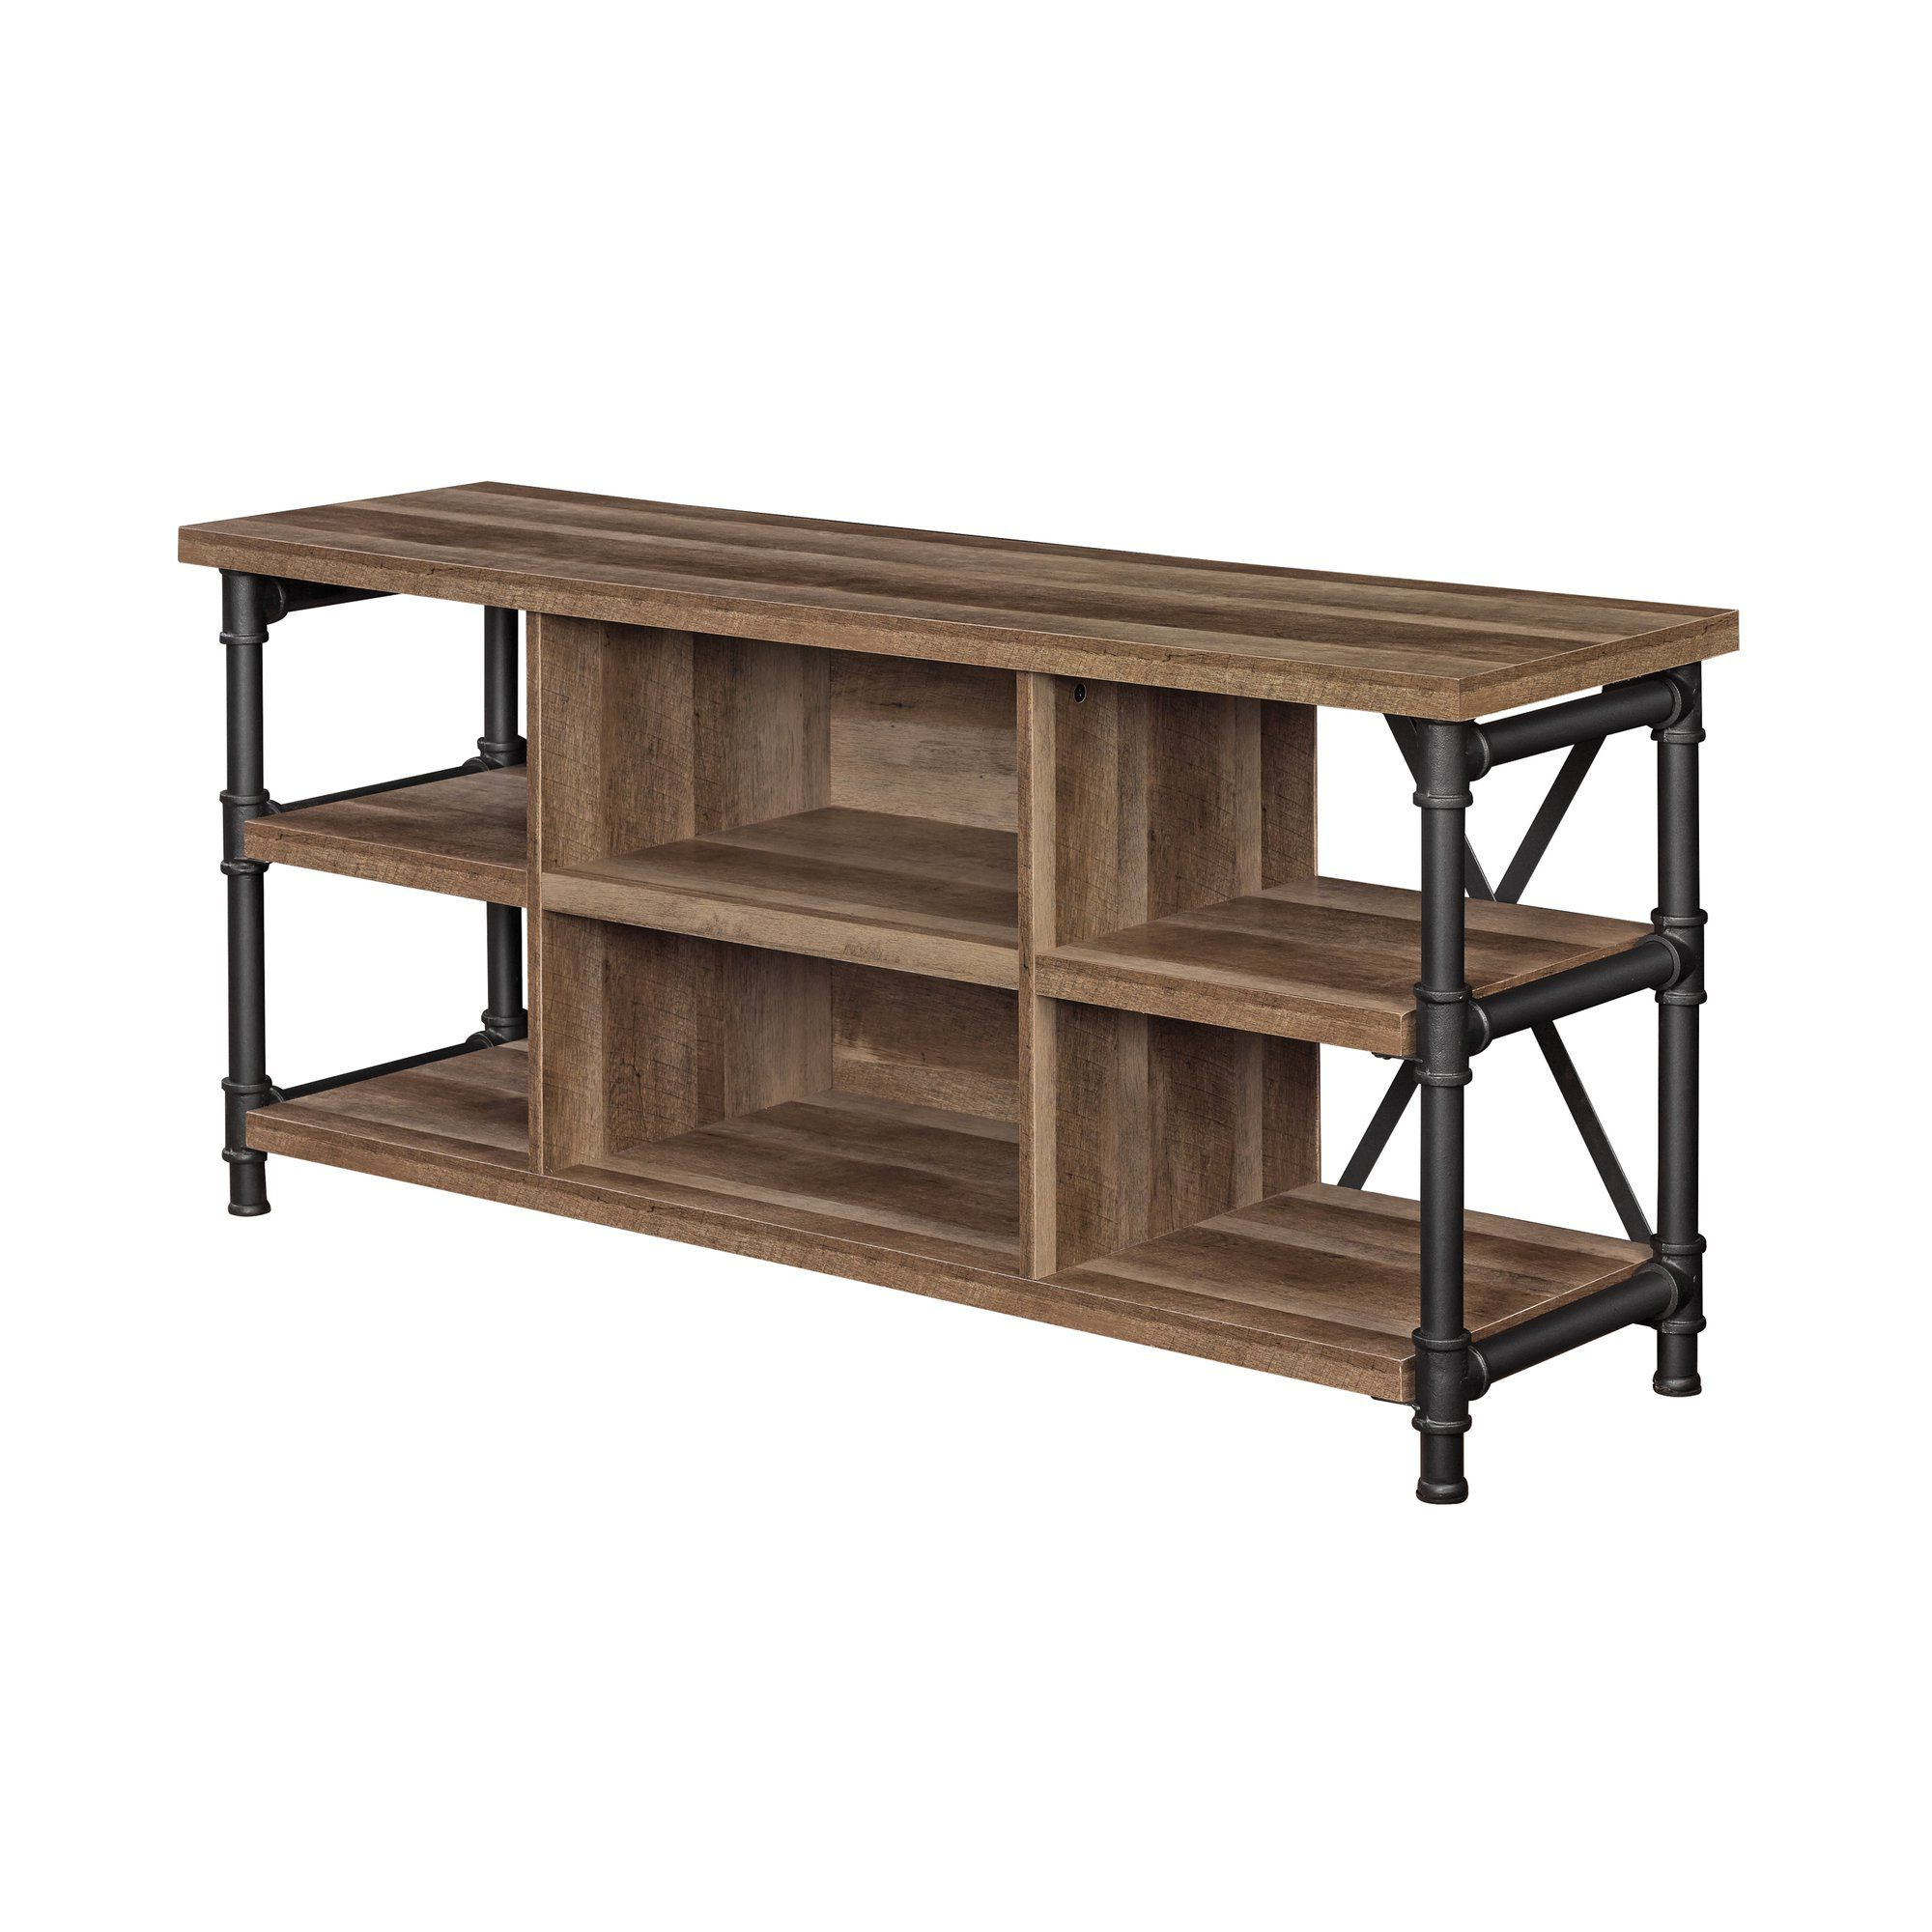 "Bailys Tv Stand For Tvs Up To 65"" With Optional Fireplace 